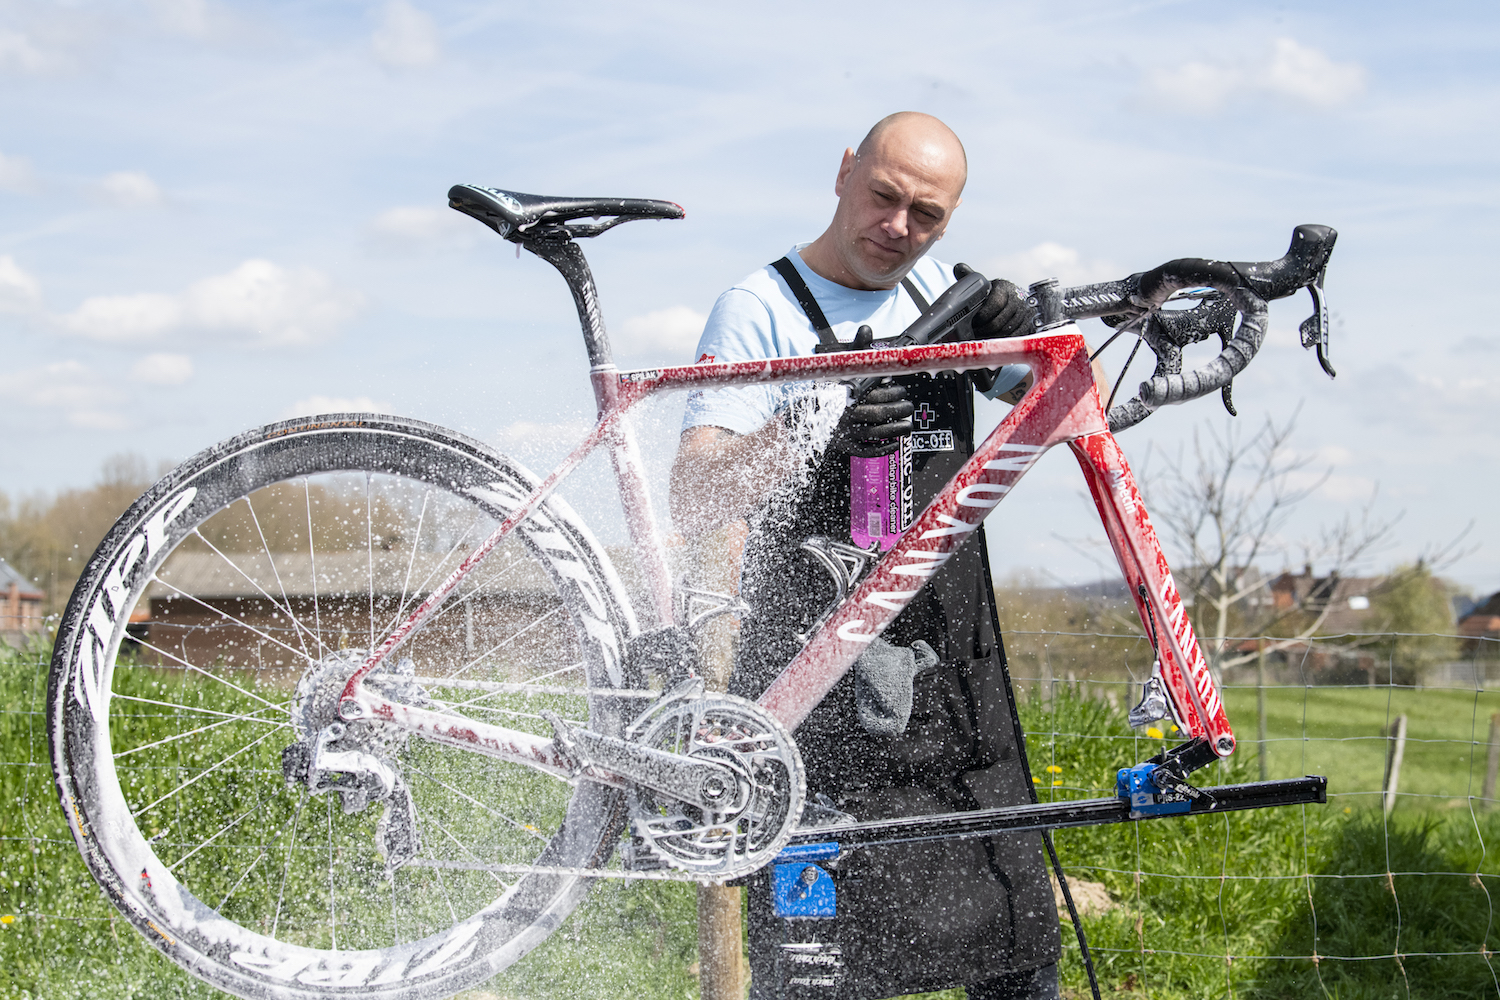 Muc-Off launches a bike-specific pressure washer - Cycling Weekly